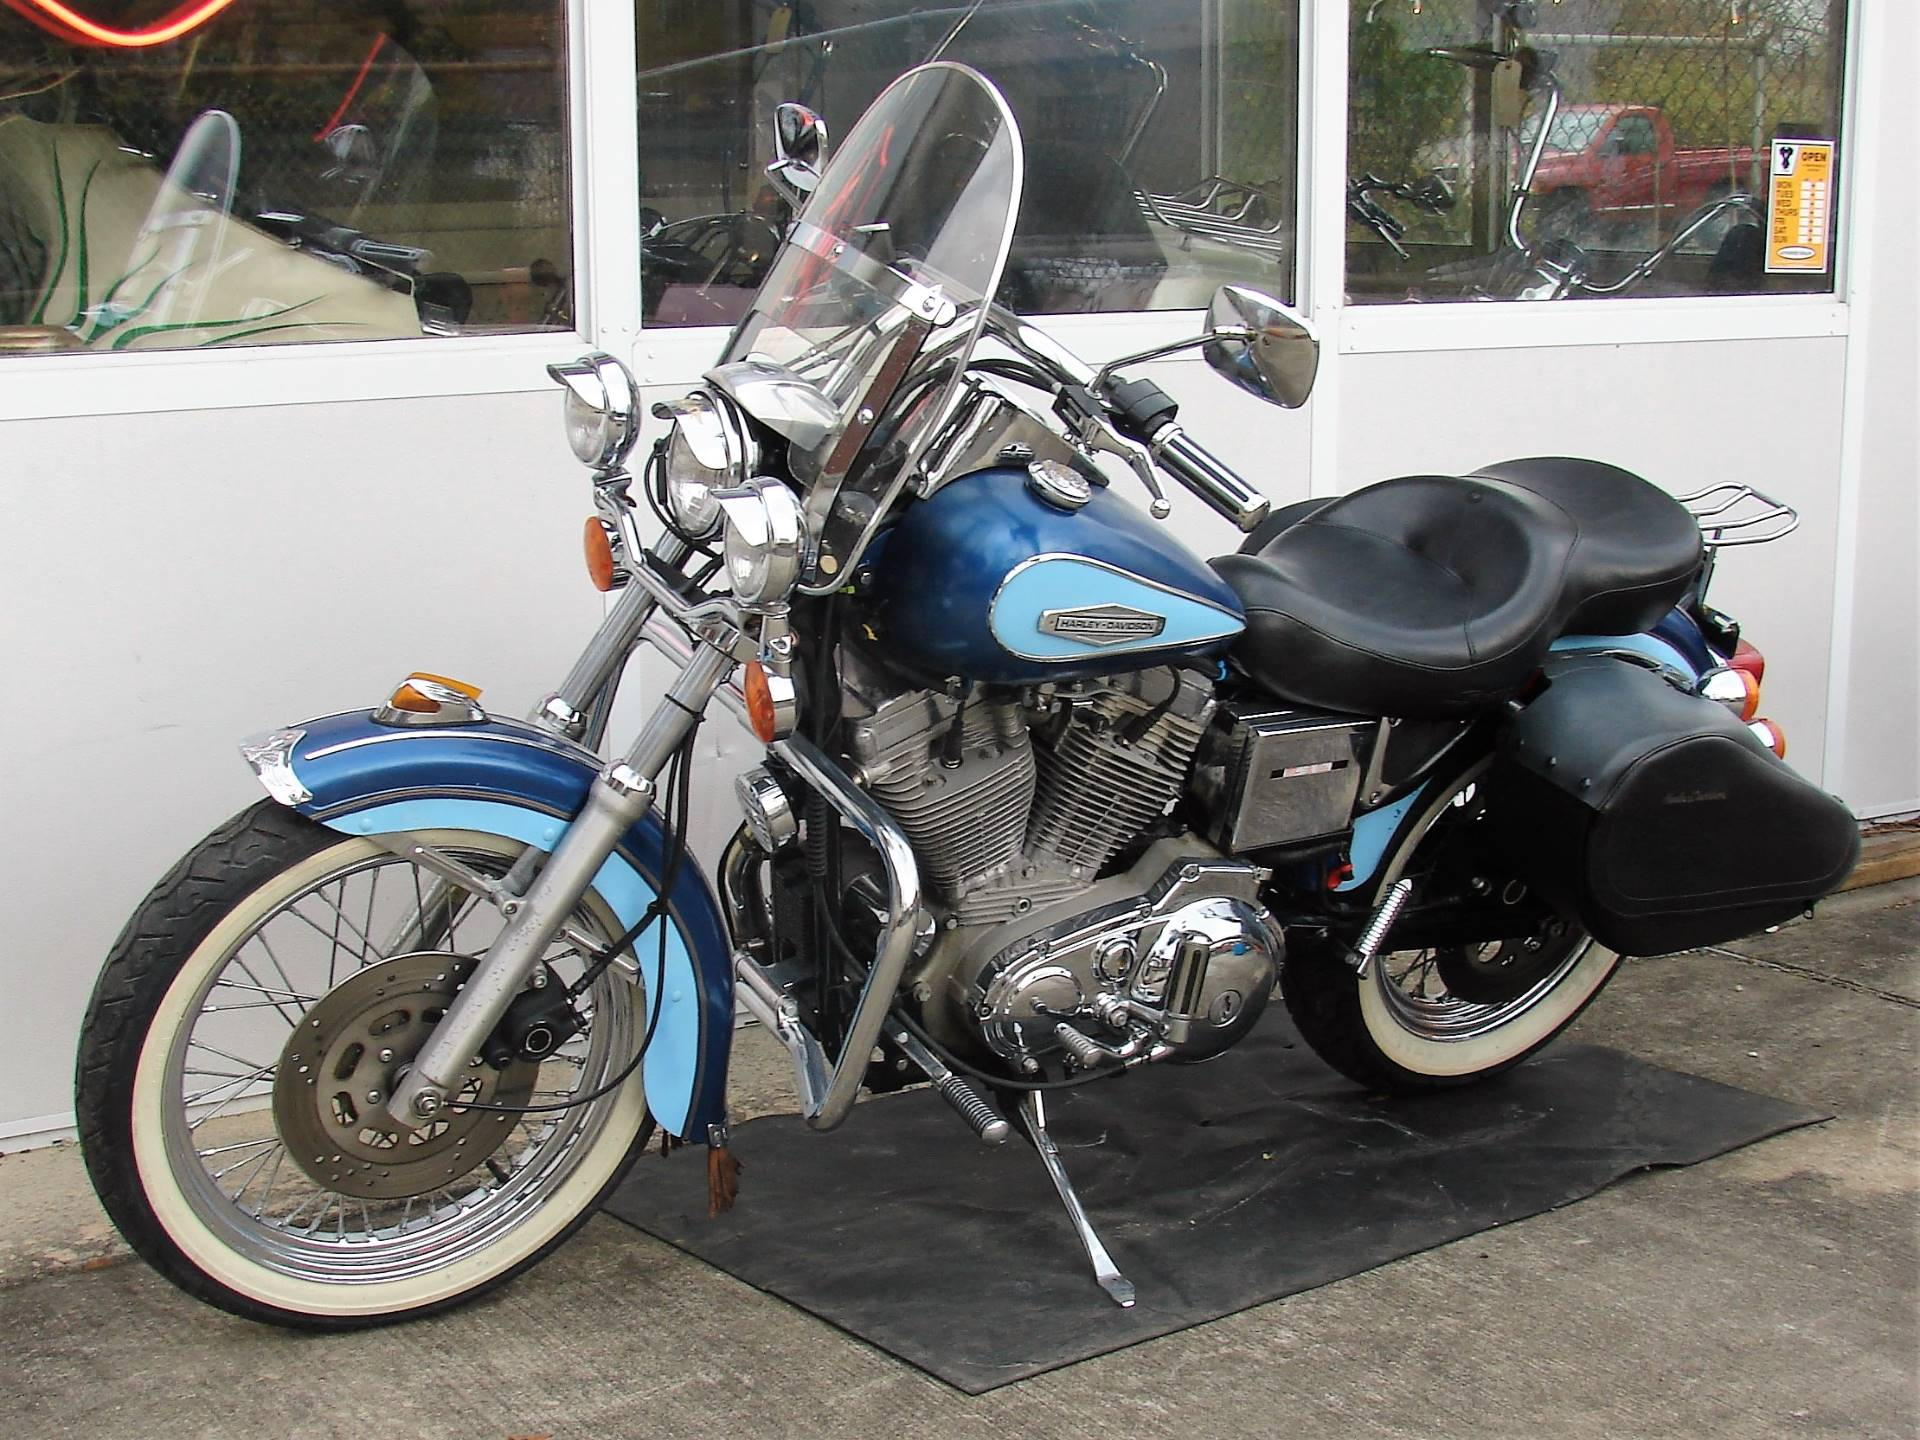 1989 Harley-Davidson XLH 883 Sportster (w/ Touring Conversion) in Williamstown, New Jersey - Photo 11